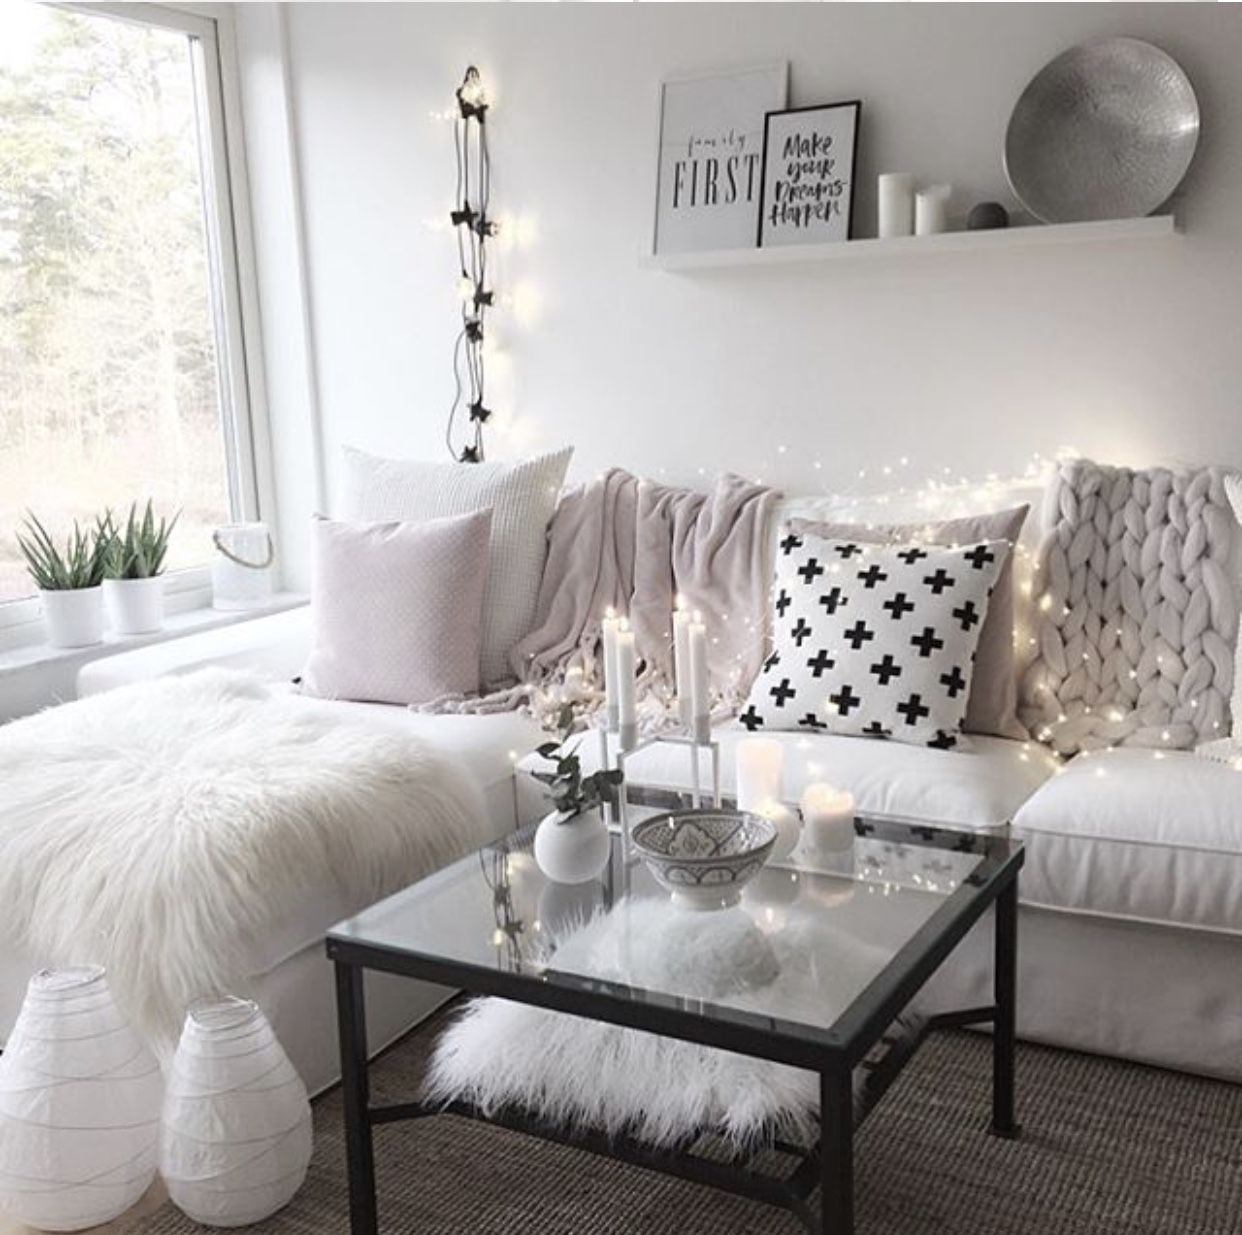 Apartment Bedroom Ideas: Girly Living Room/apartment Idea